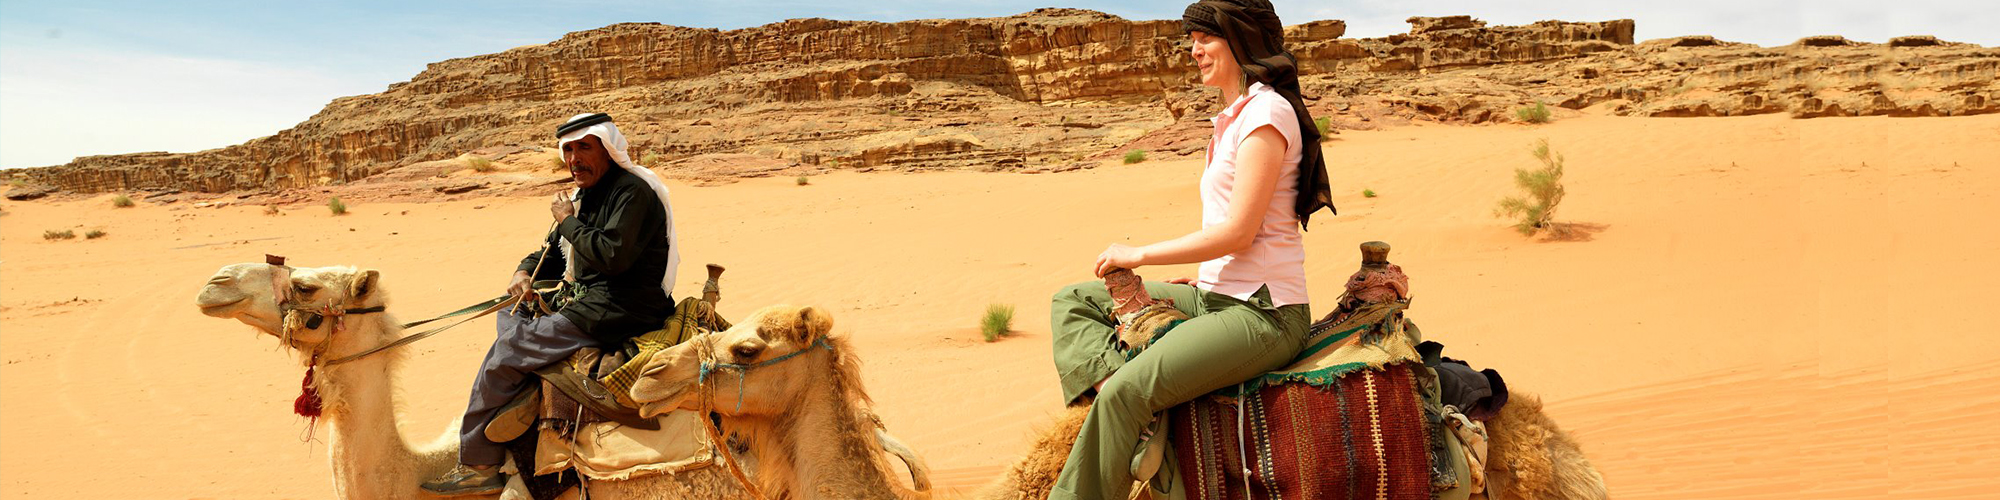 El Gouna Safari Trips - Safari Tours in El Gouna - El Gouna Excursions - Tours From Hurghada